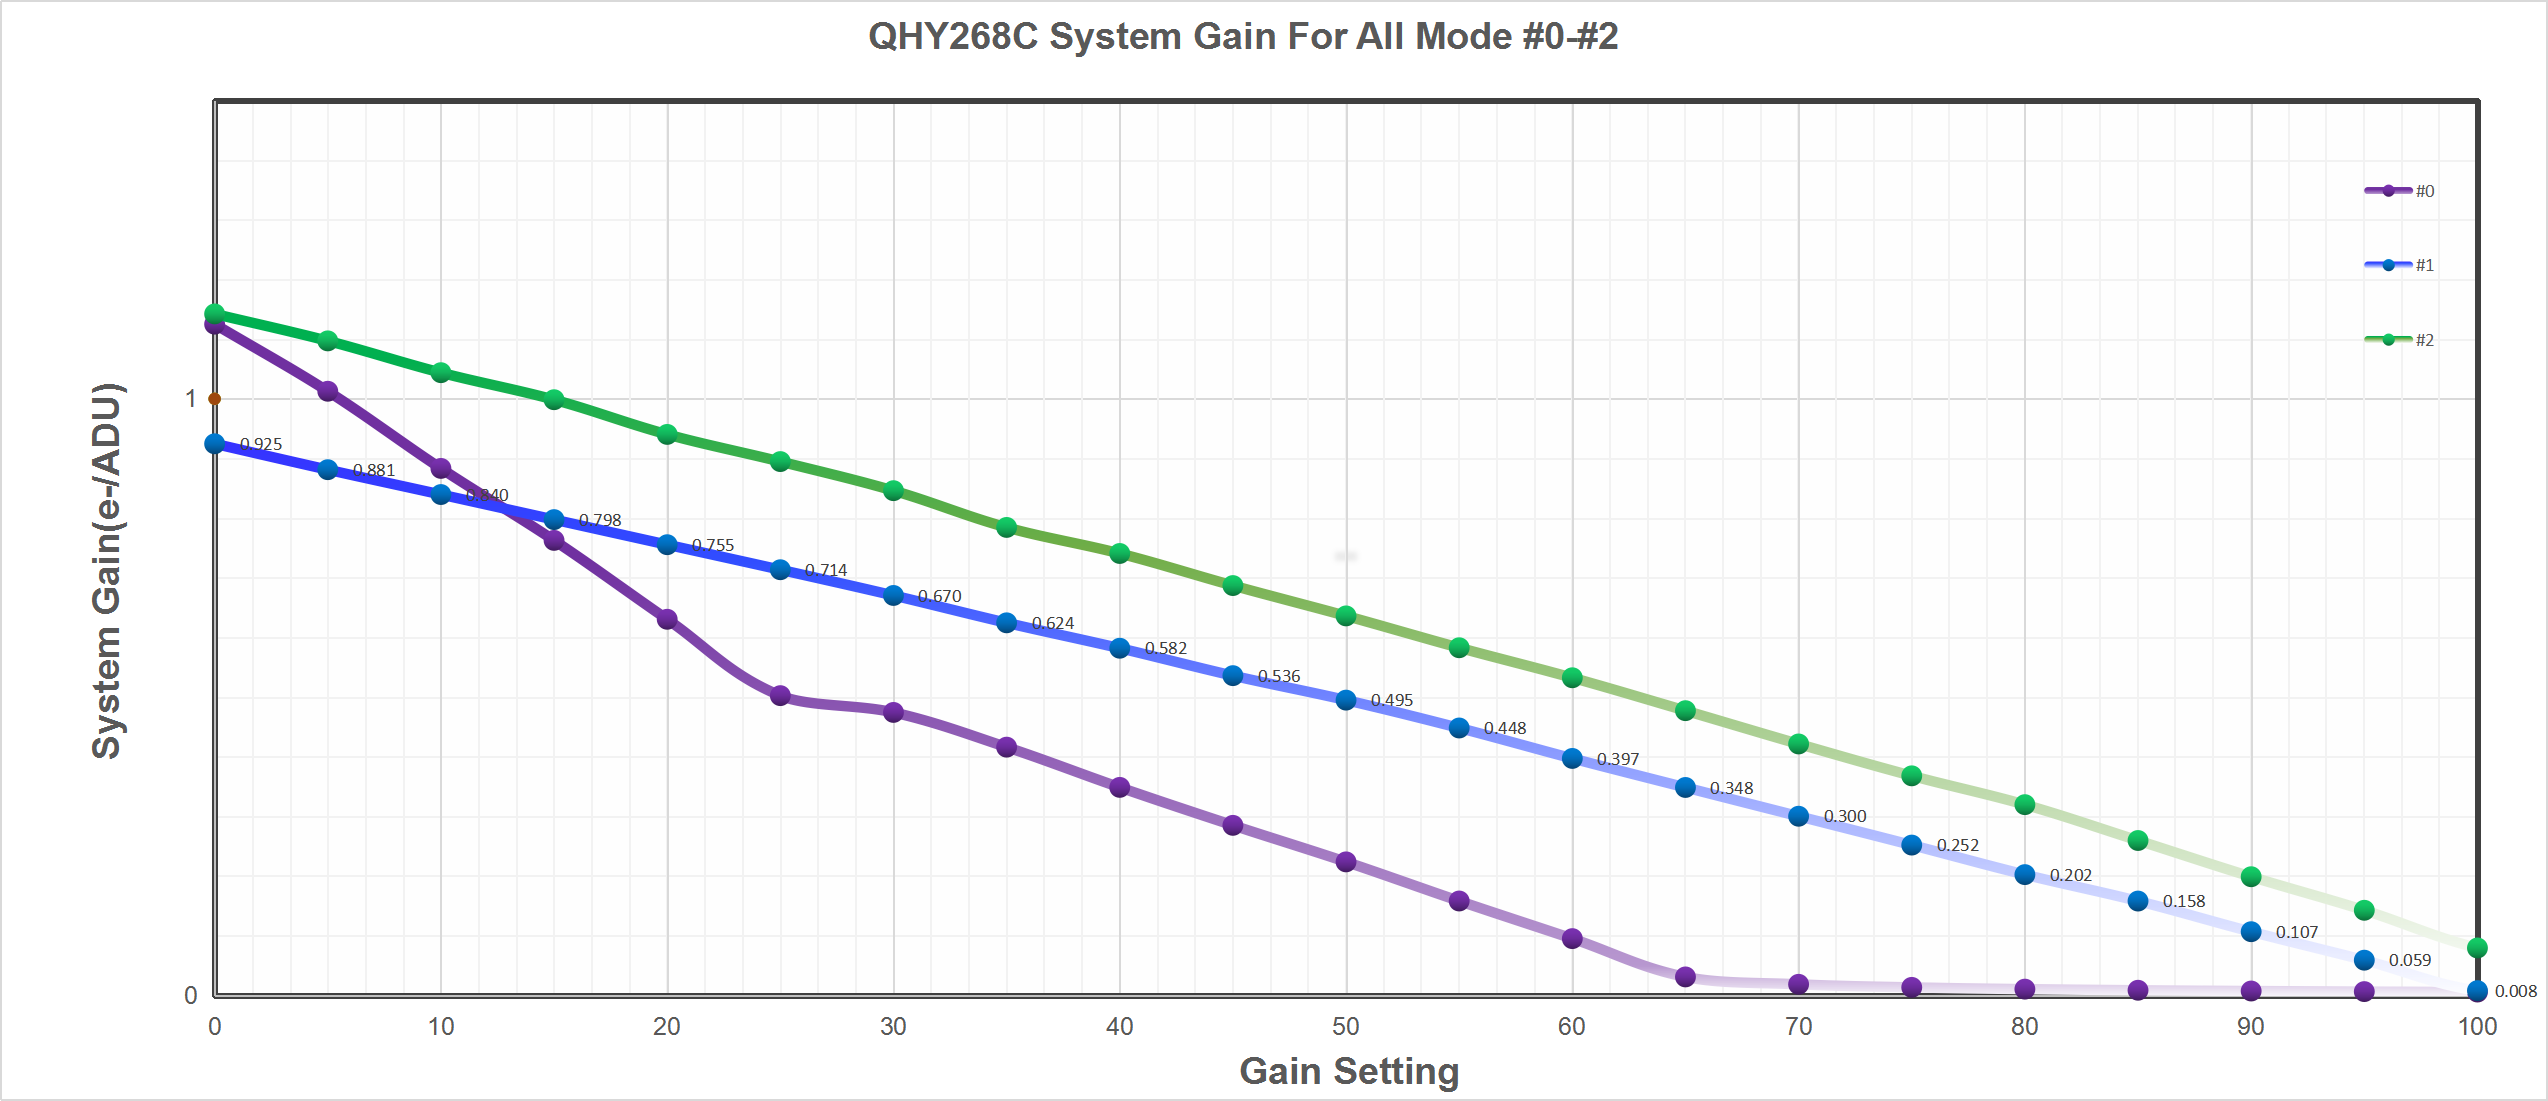 QHY268C System Gain For All Mode